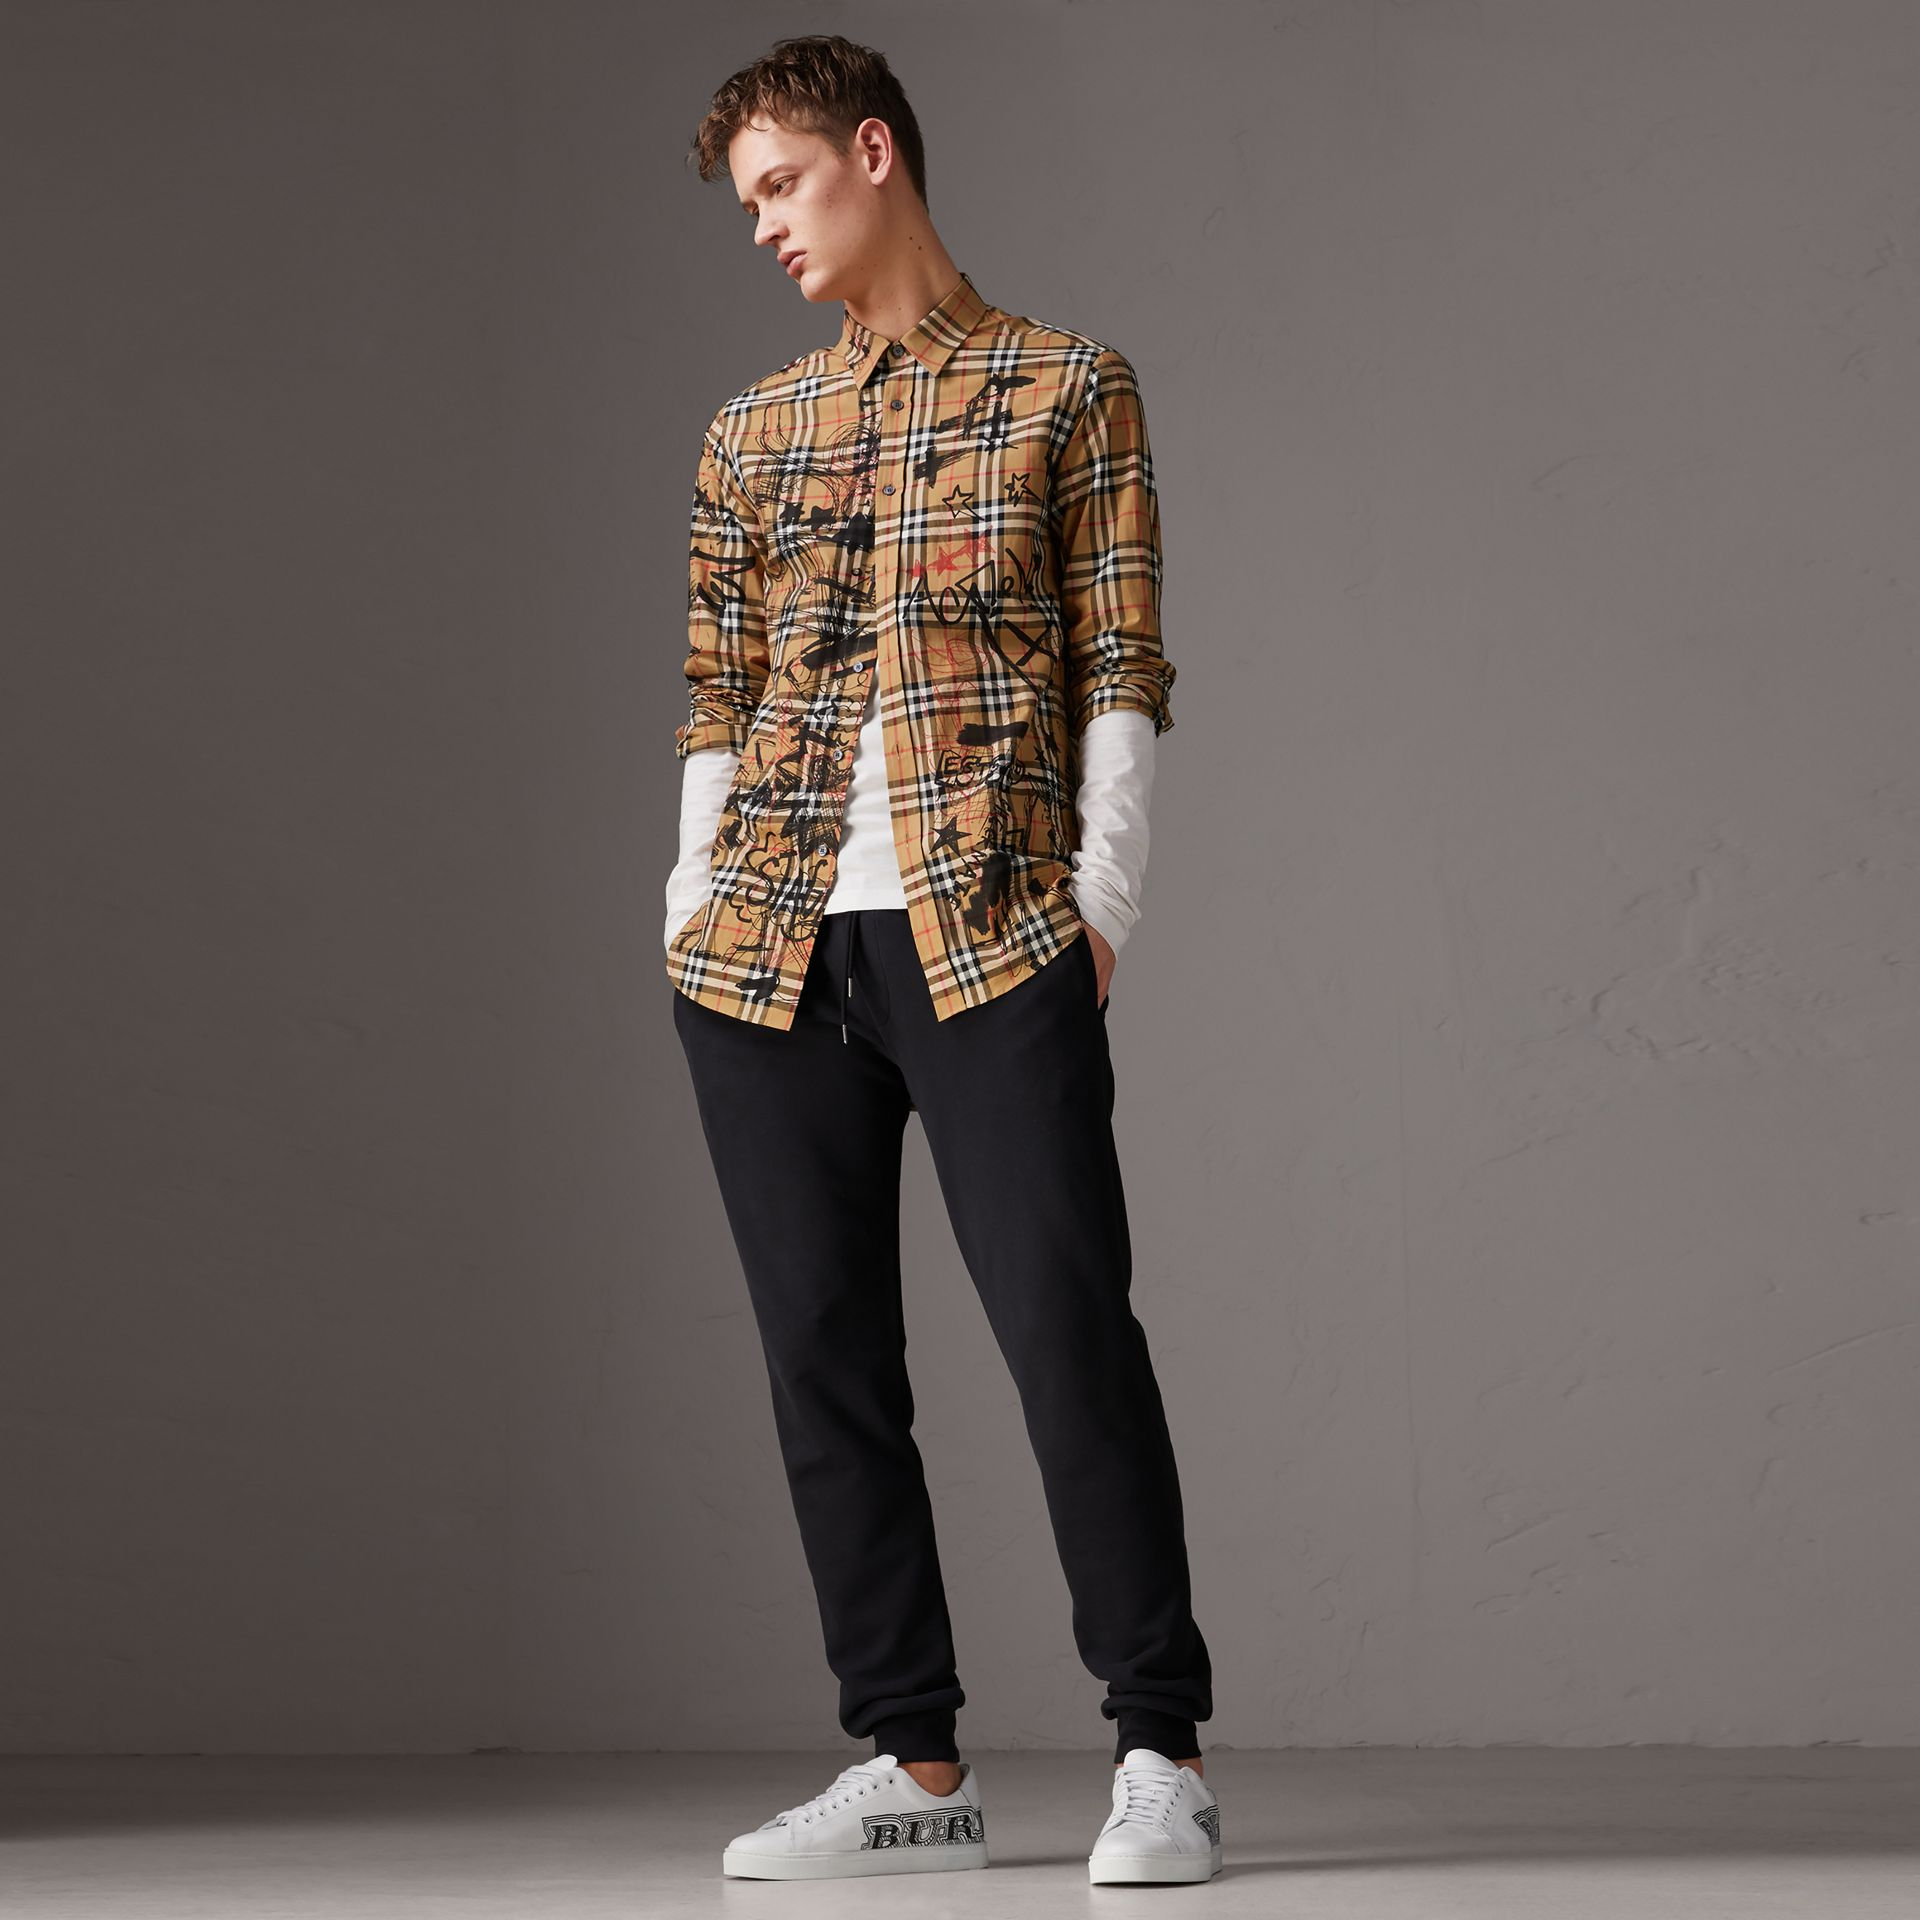 Burberry x Kris Wu Vintage Check Cotton Shirt in Antique Yellow - Men | Burberry United Kingdom - gallery image 0